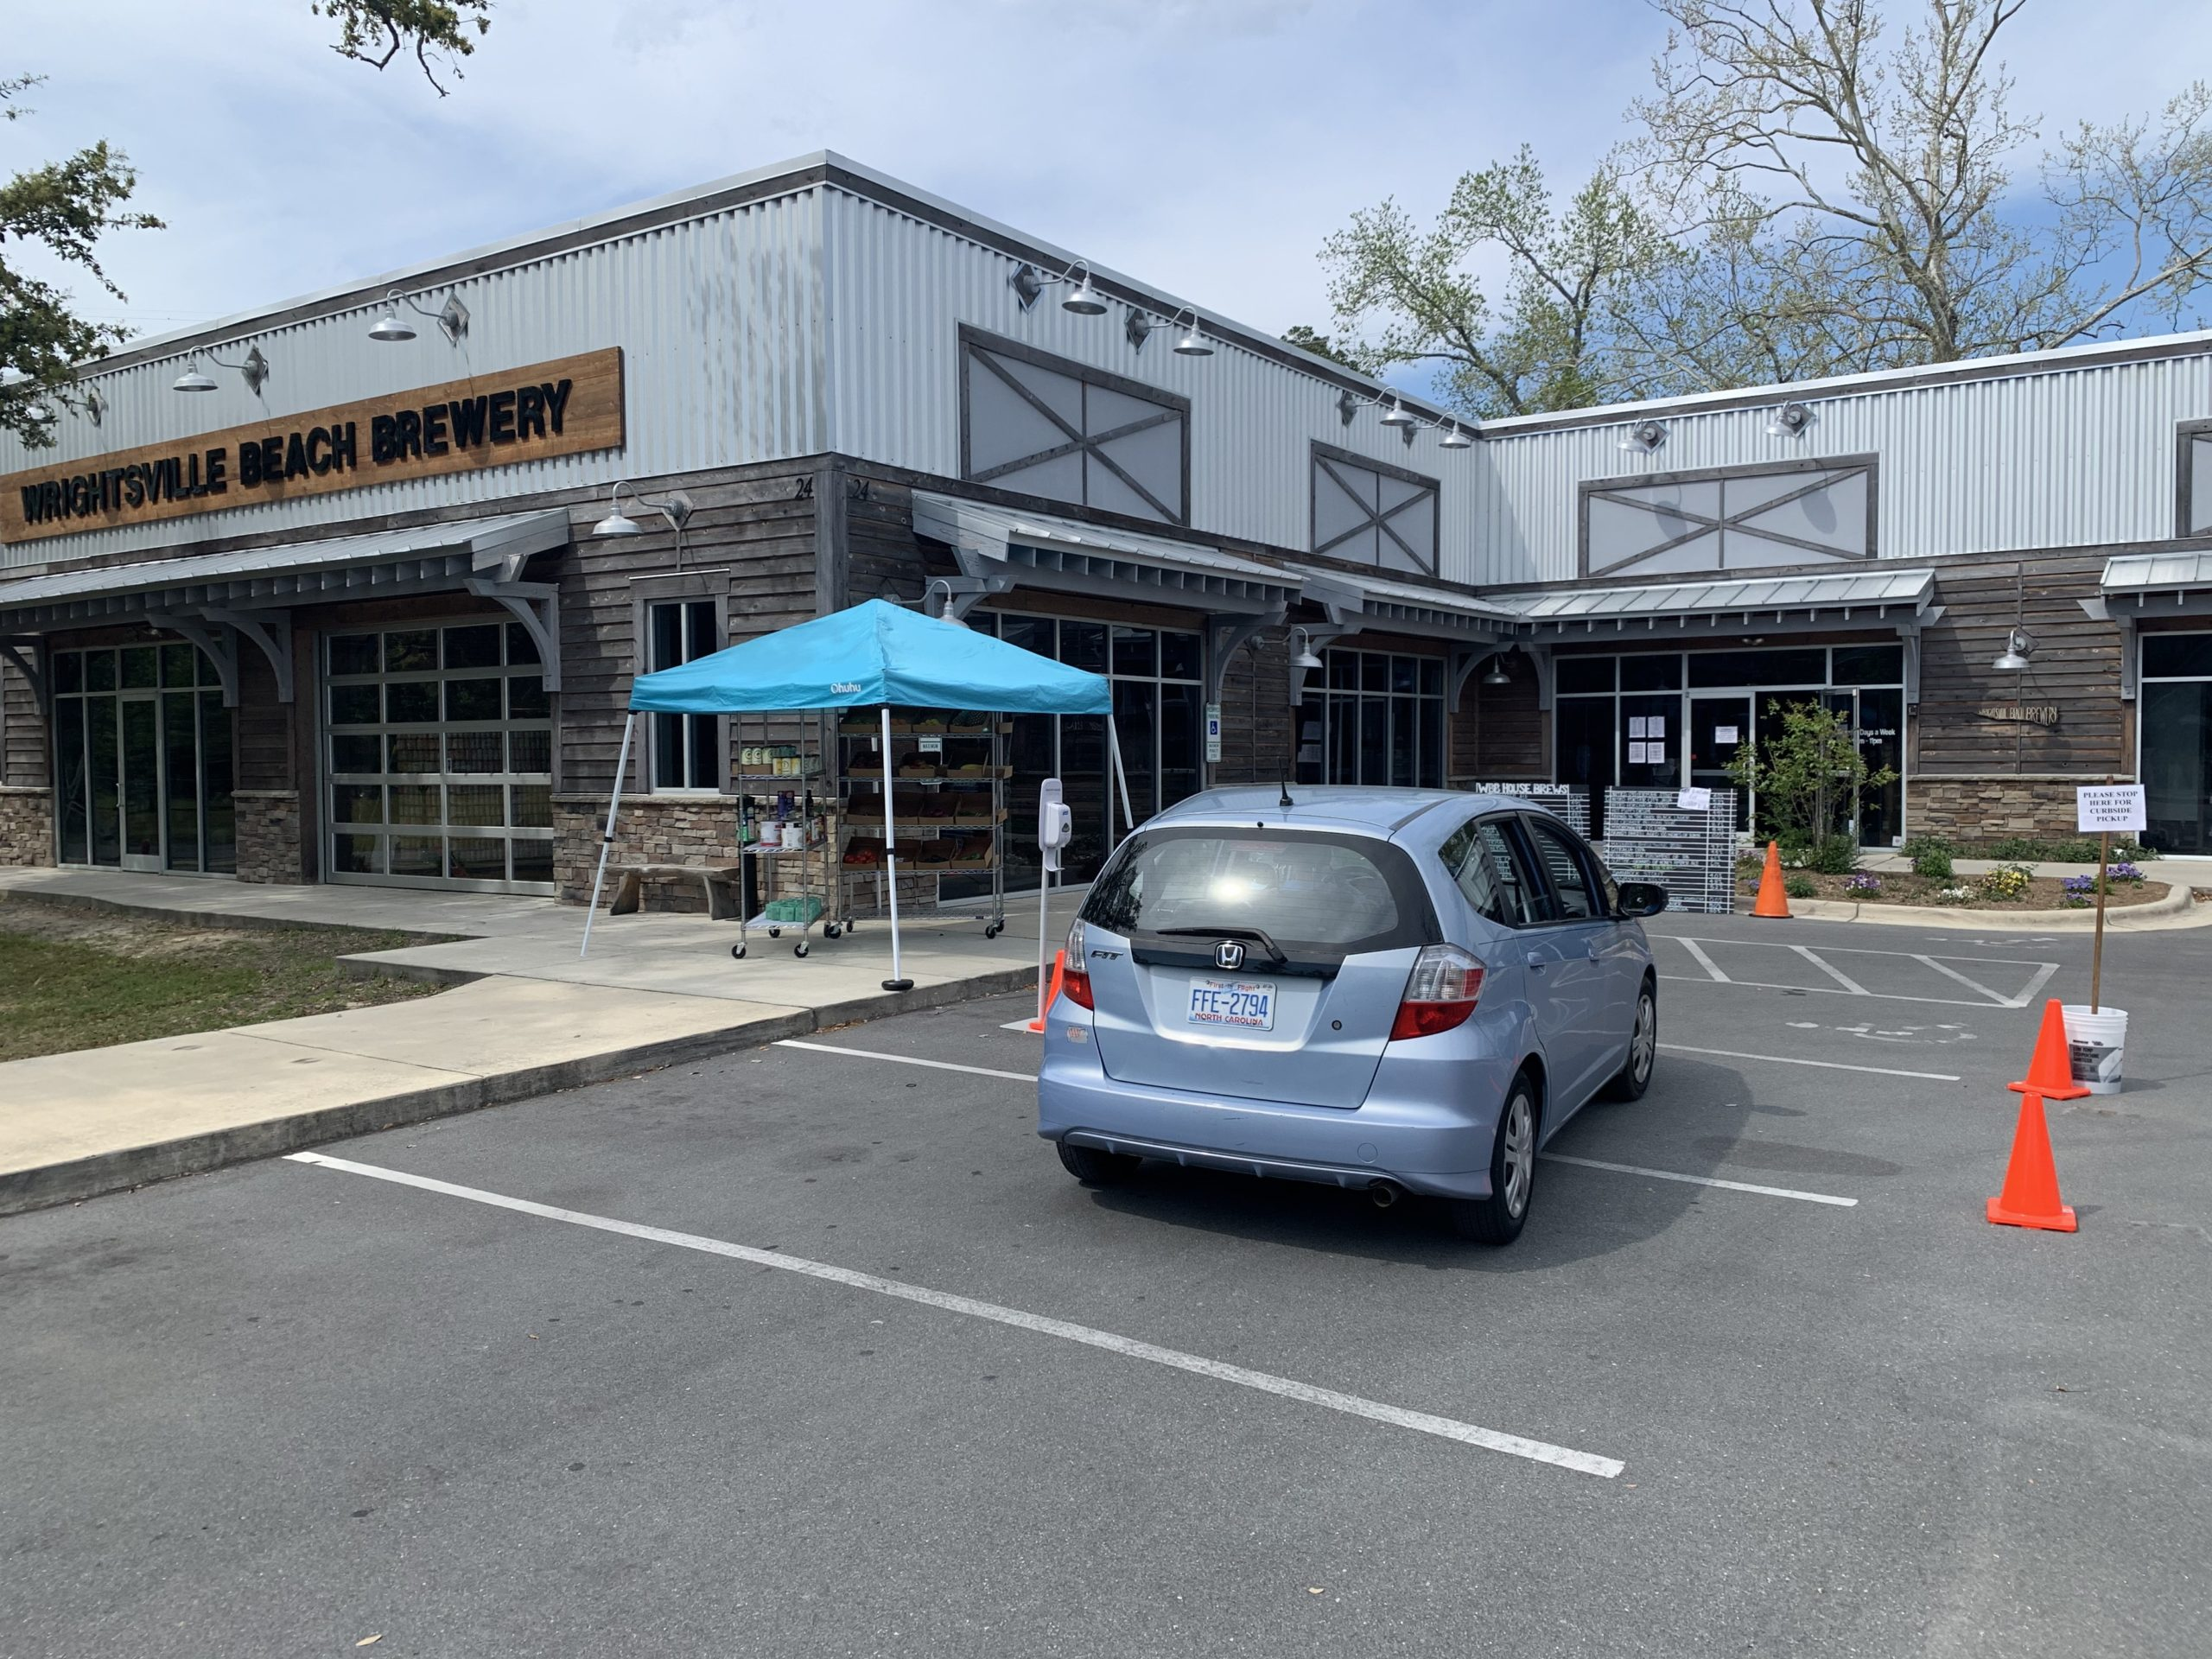 Jud Watkins, owner of Wrightsville Beach Brewery, has converted his business into a drive-through for beer, groceries and pizza. While many business owners have been confused by how lenders are processing new Paycheck Protection Program applications, Watkins thinks the program may prove counterproductive for the hospitality industry.